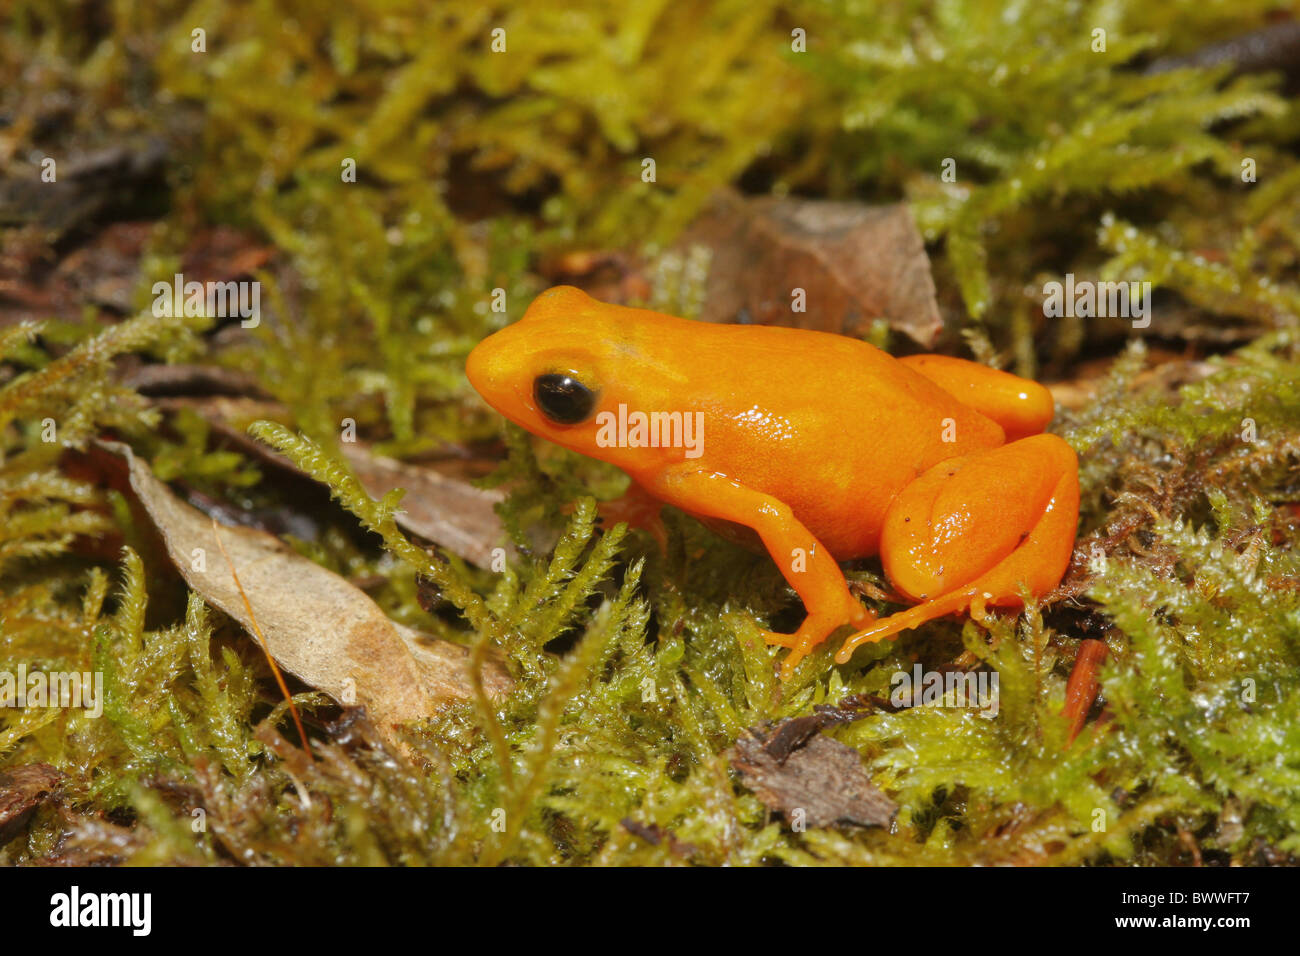 frog frogs amphibians amphibian animal animals endemic madagascar